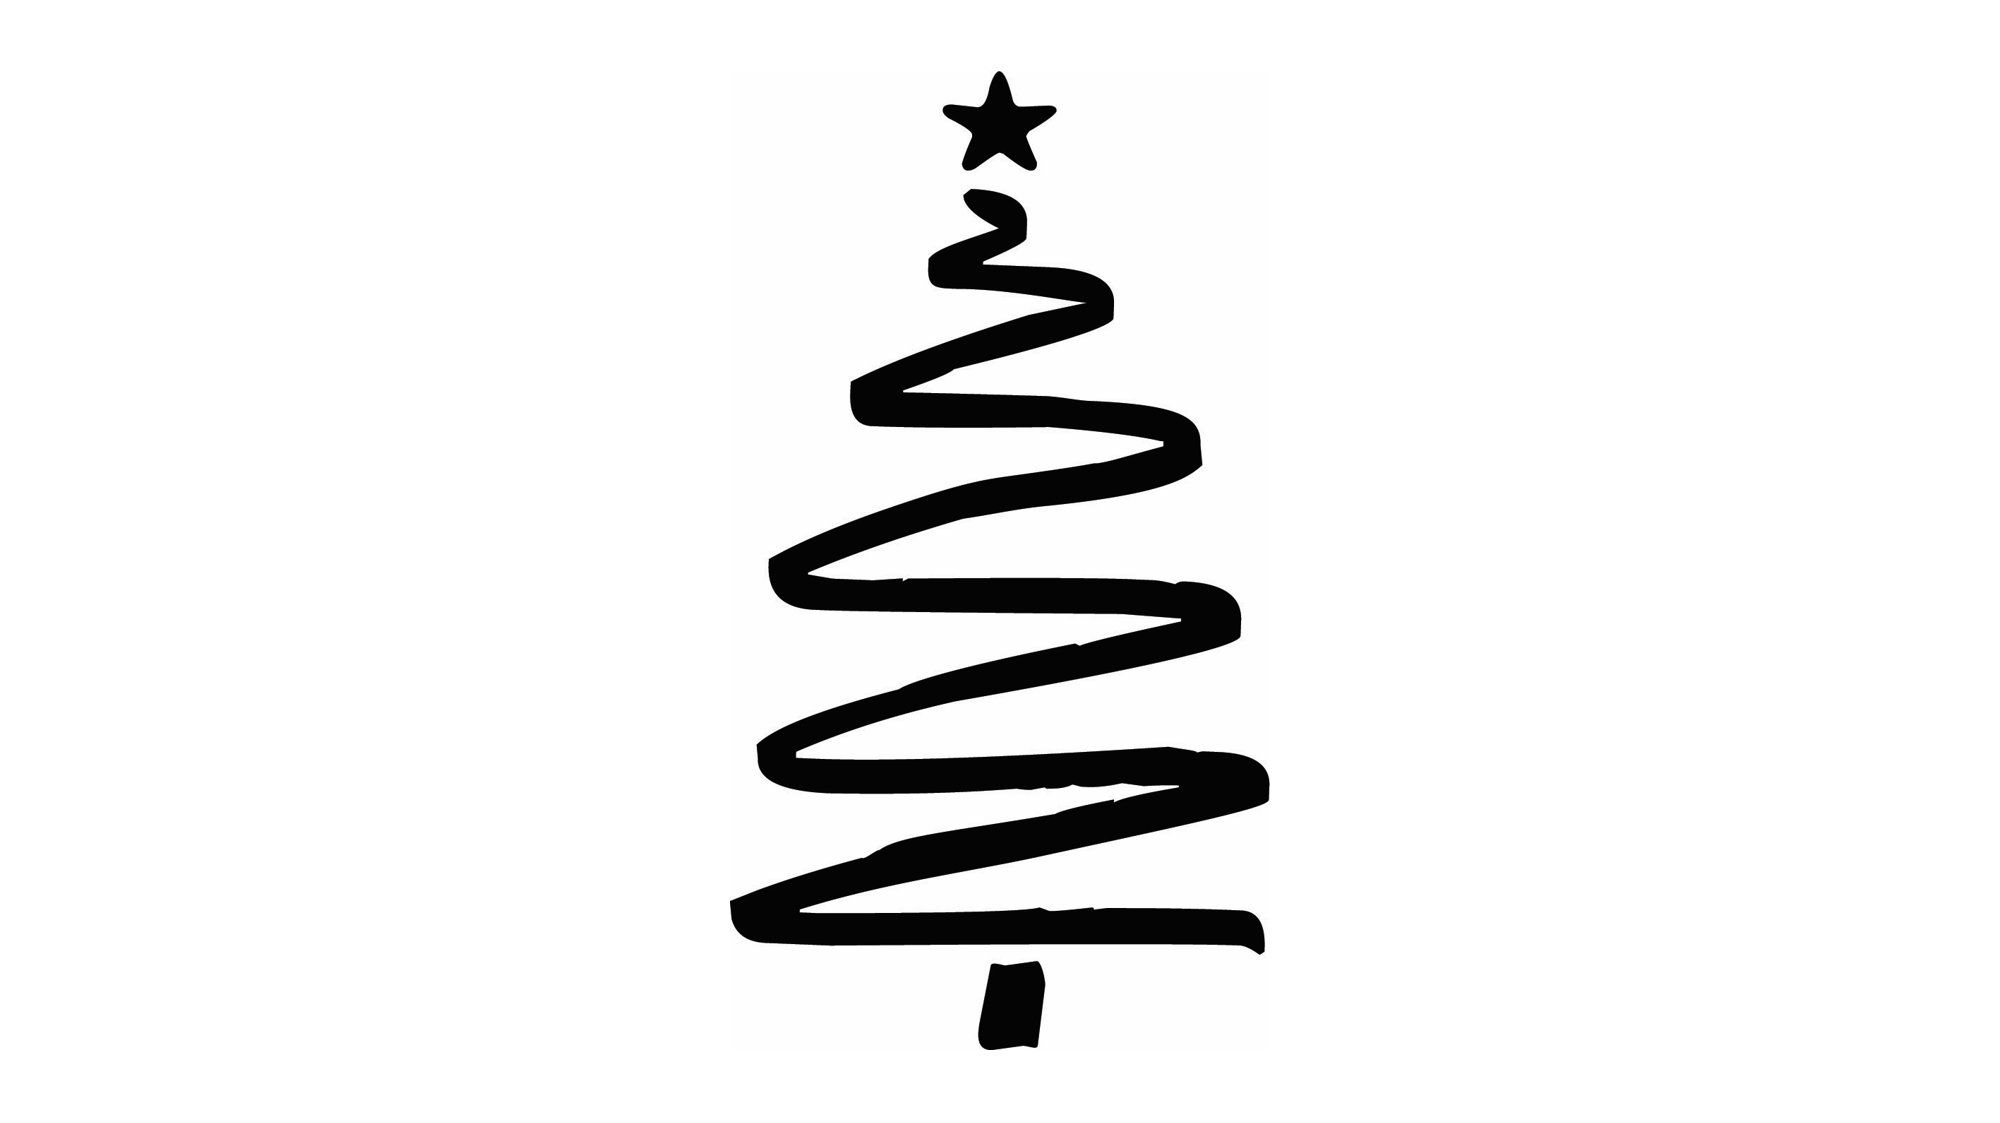 Holiday Clip Art Black White Squiggle Sketched Pine Etsy Christmas Tree Nail Art Holiday Clipart Christmas Tree Drawing